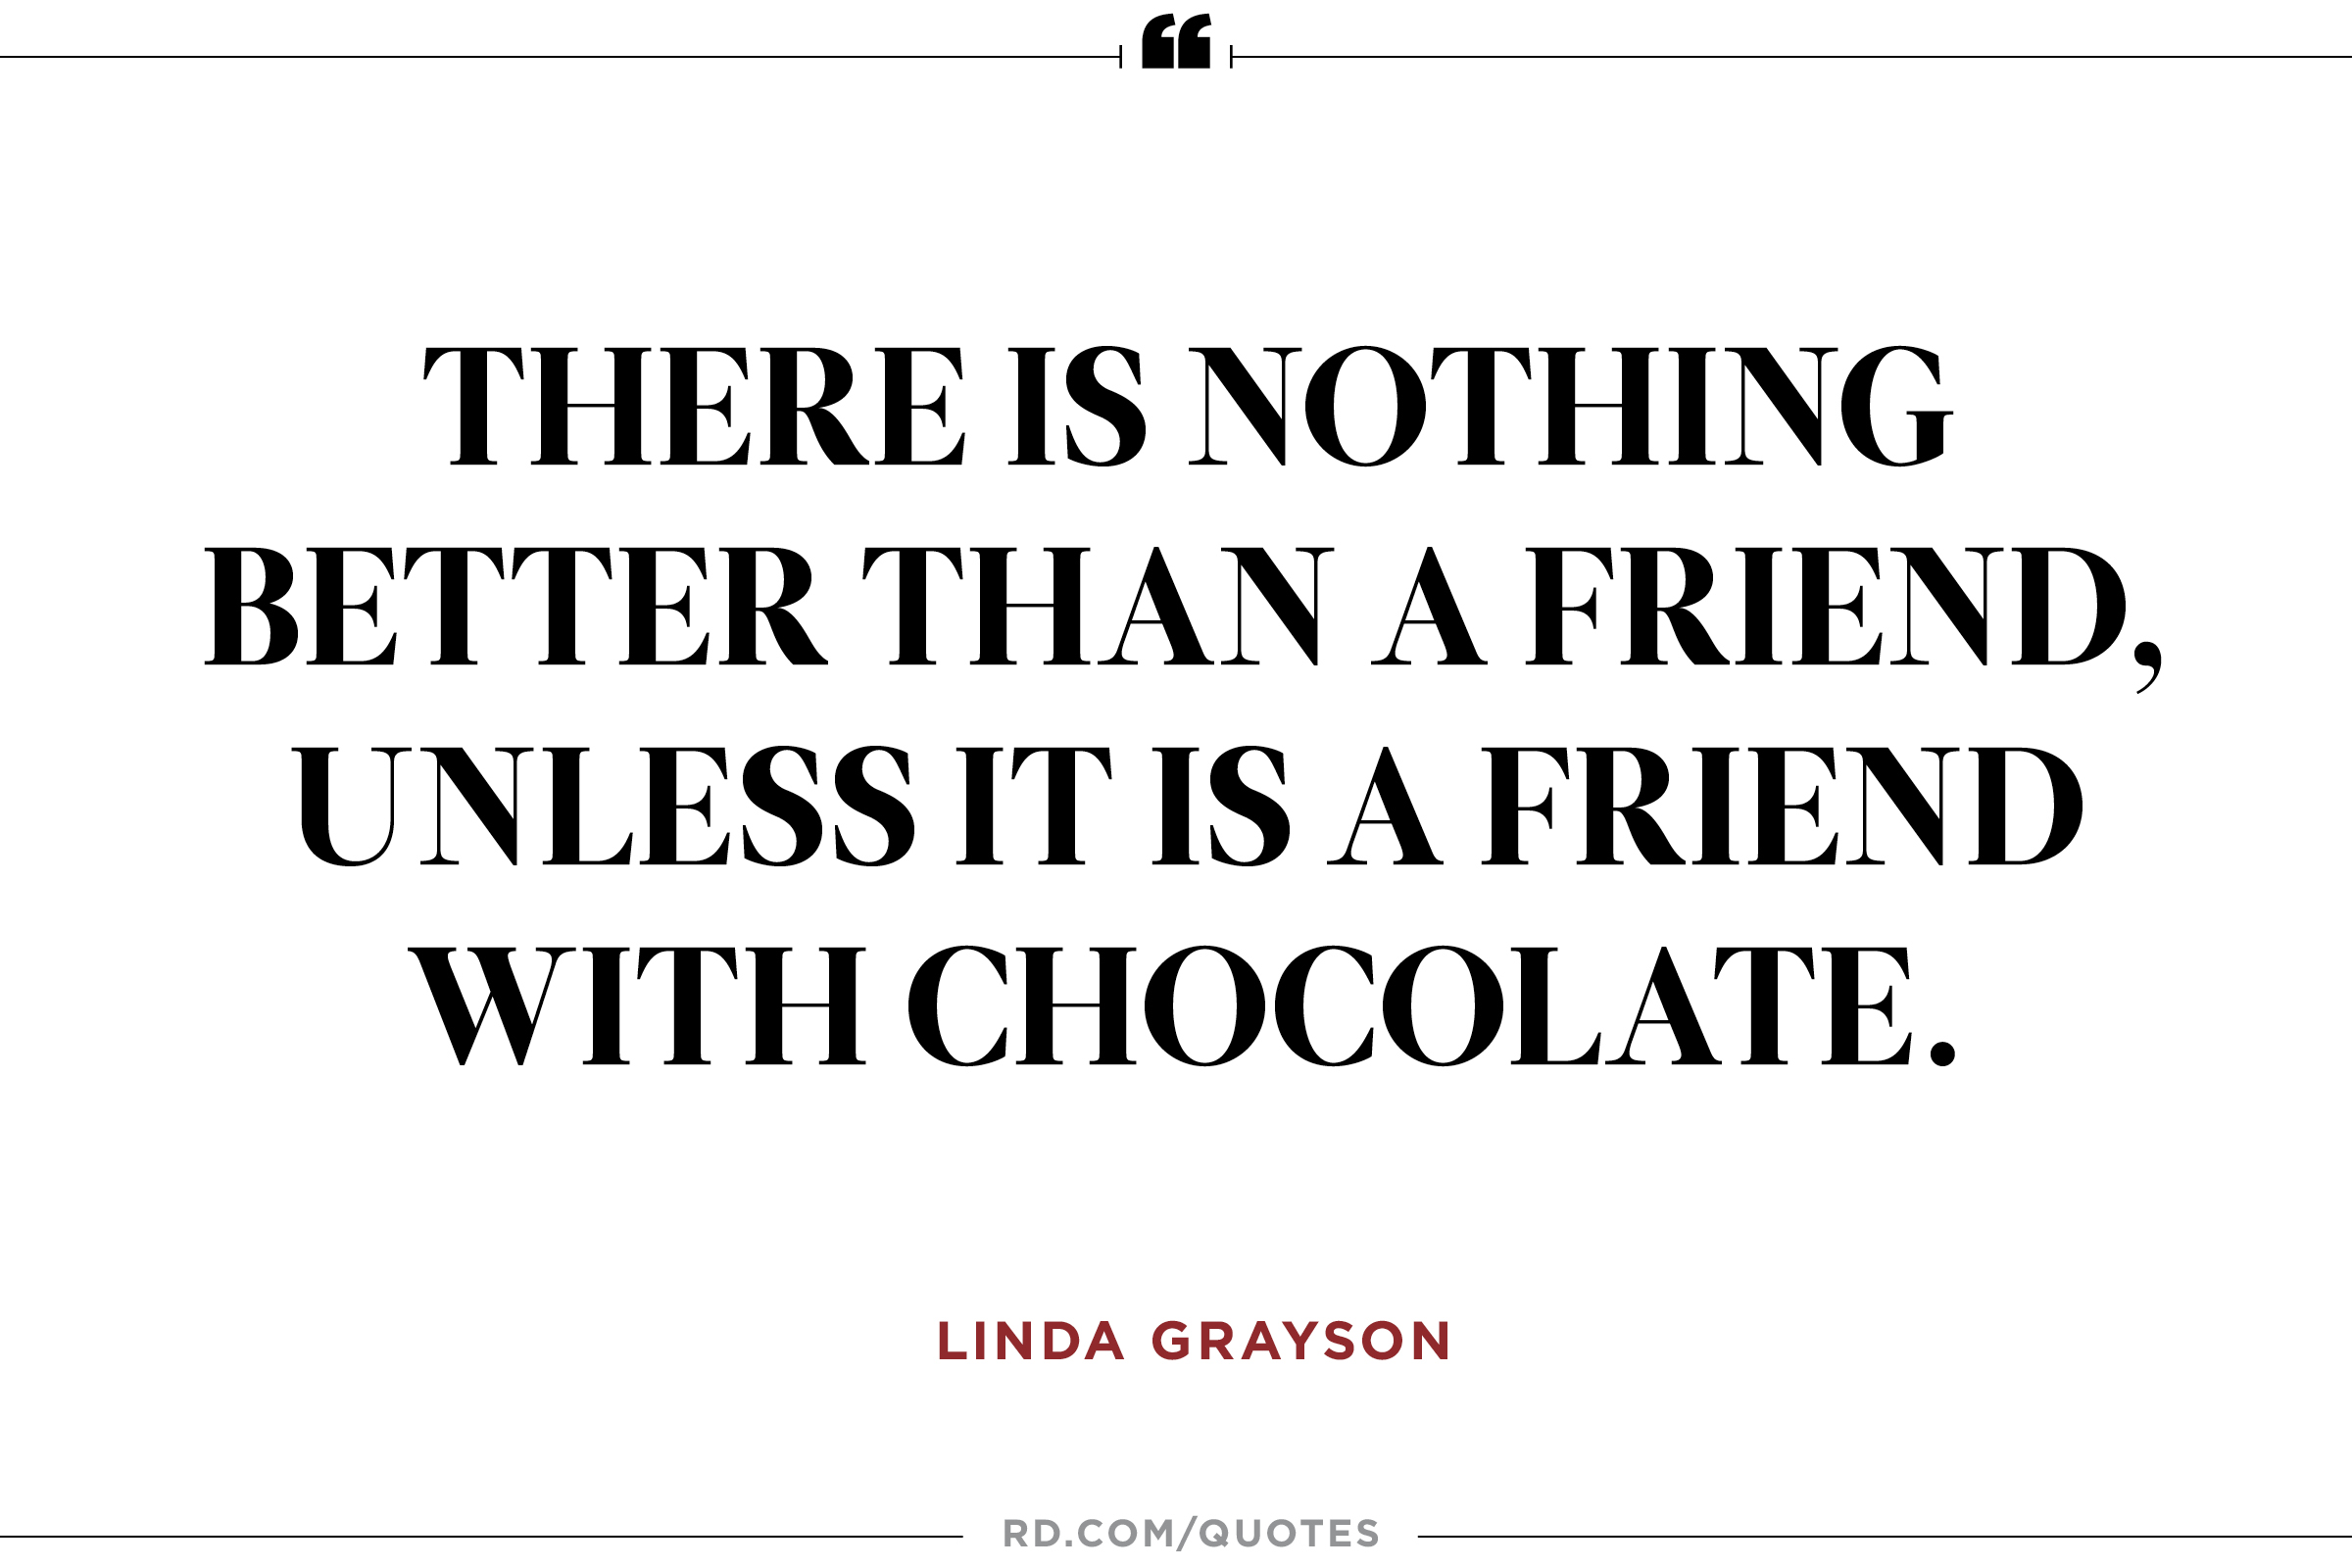 There is nothing better than a friend, unless it is a friend with chocolate. Linda Grayson